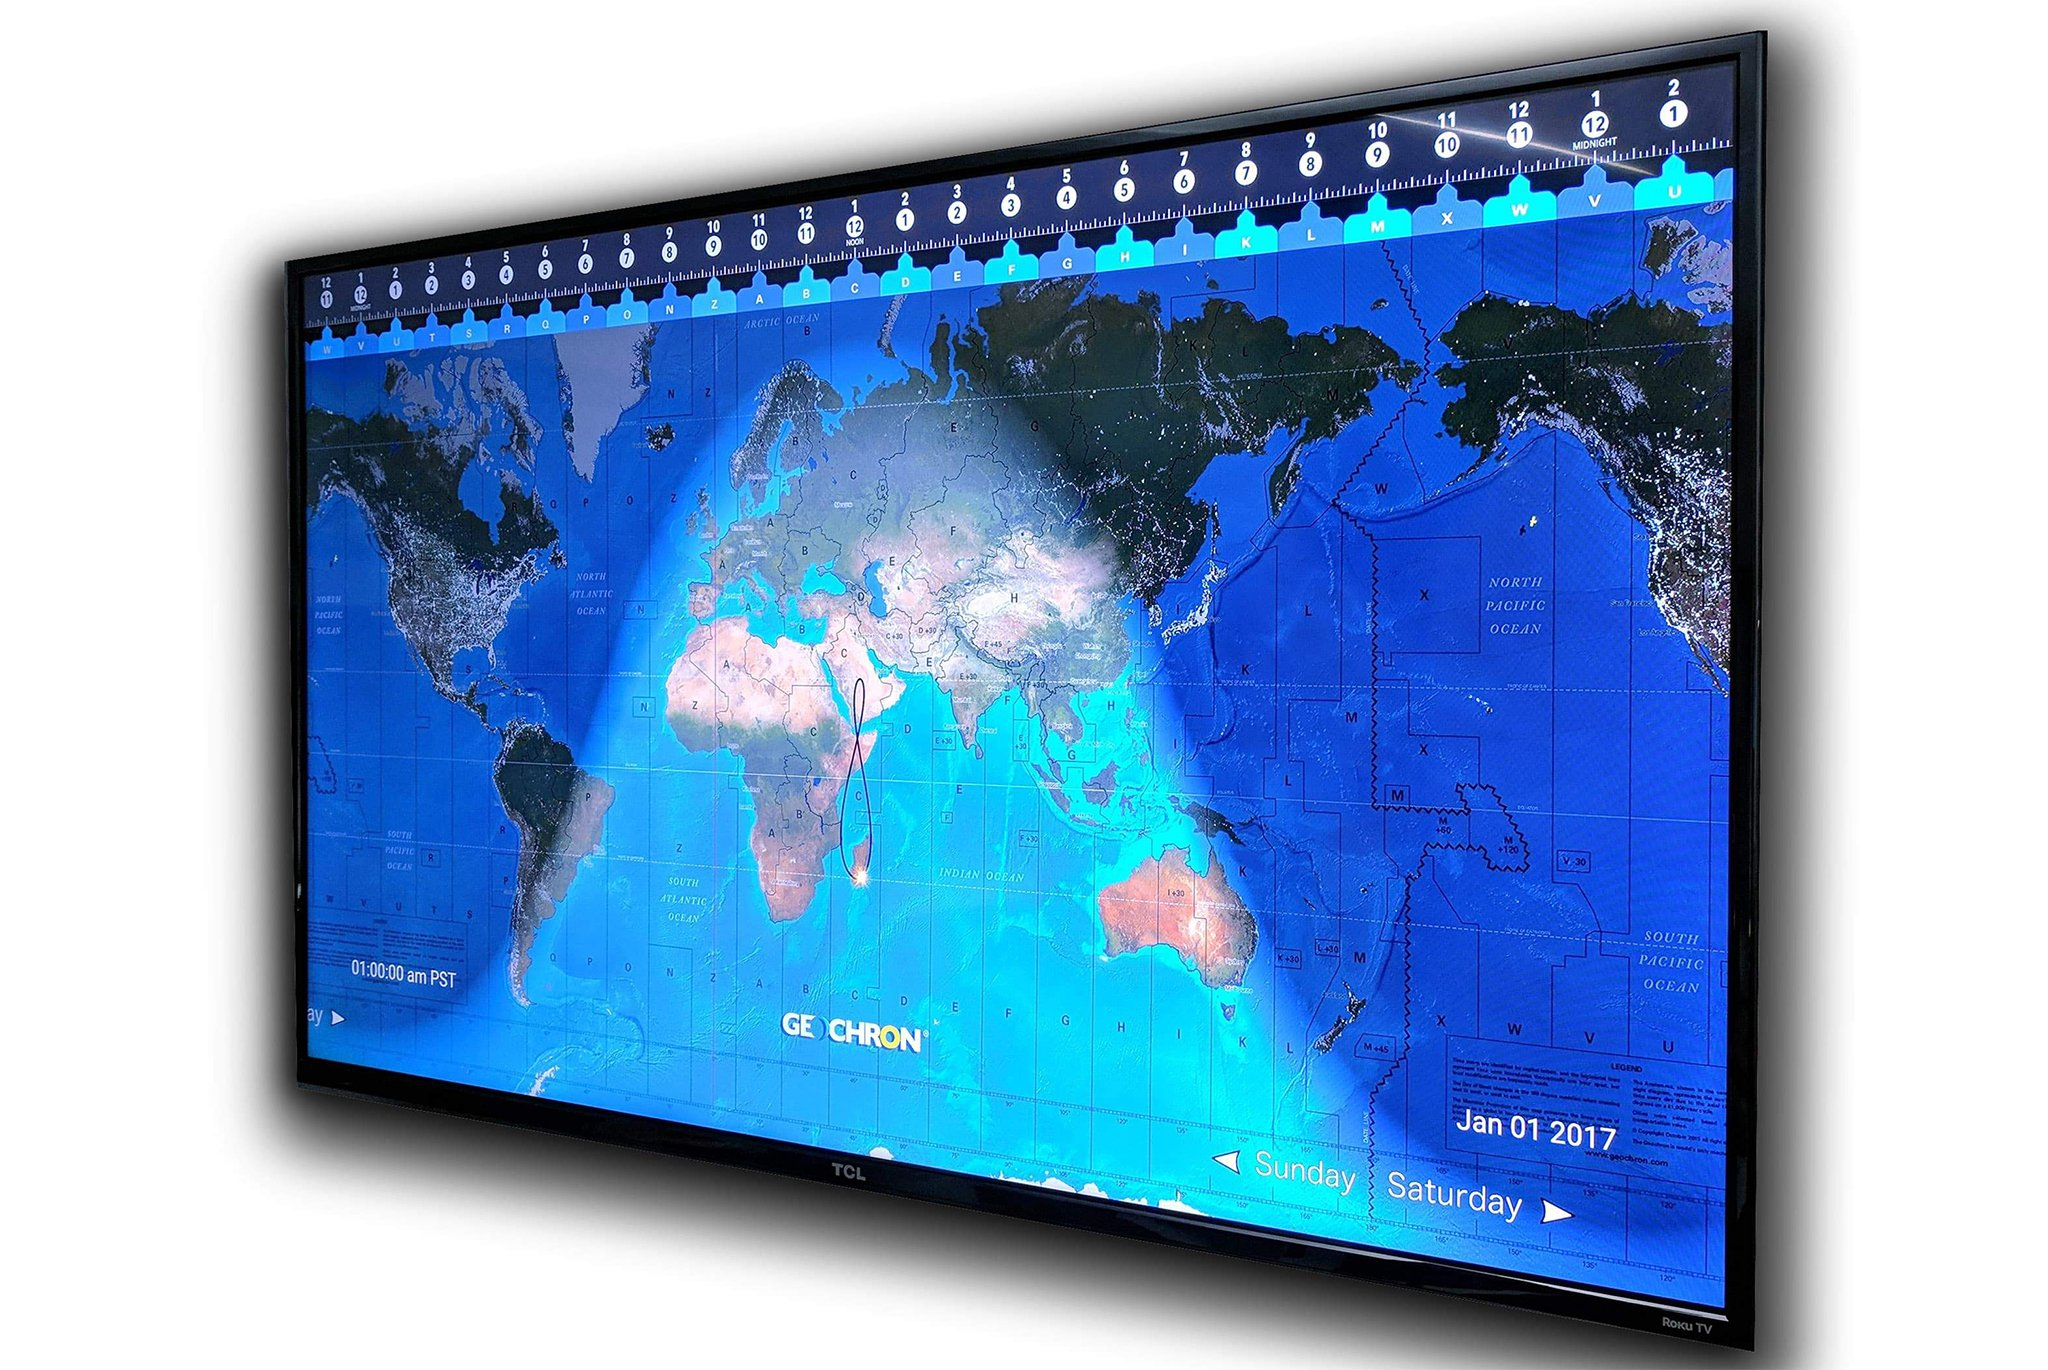 Geochron 4K World Clock – Review